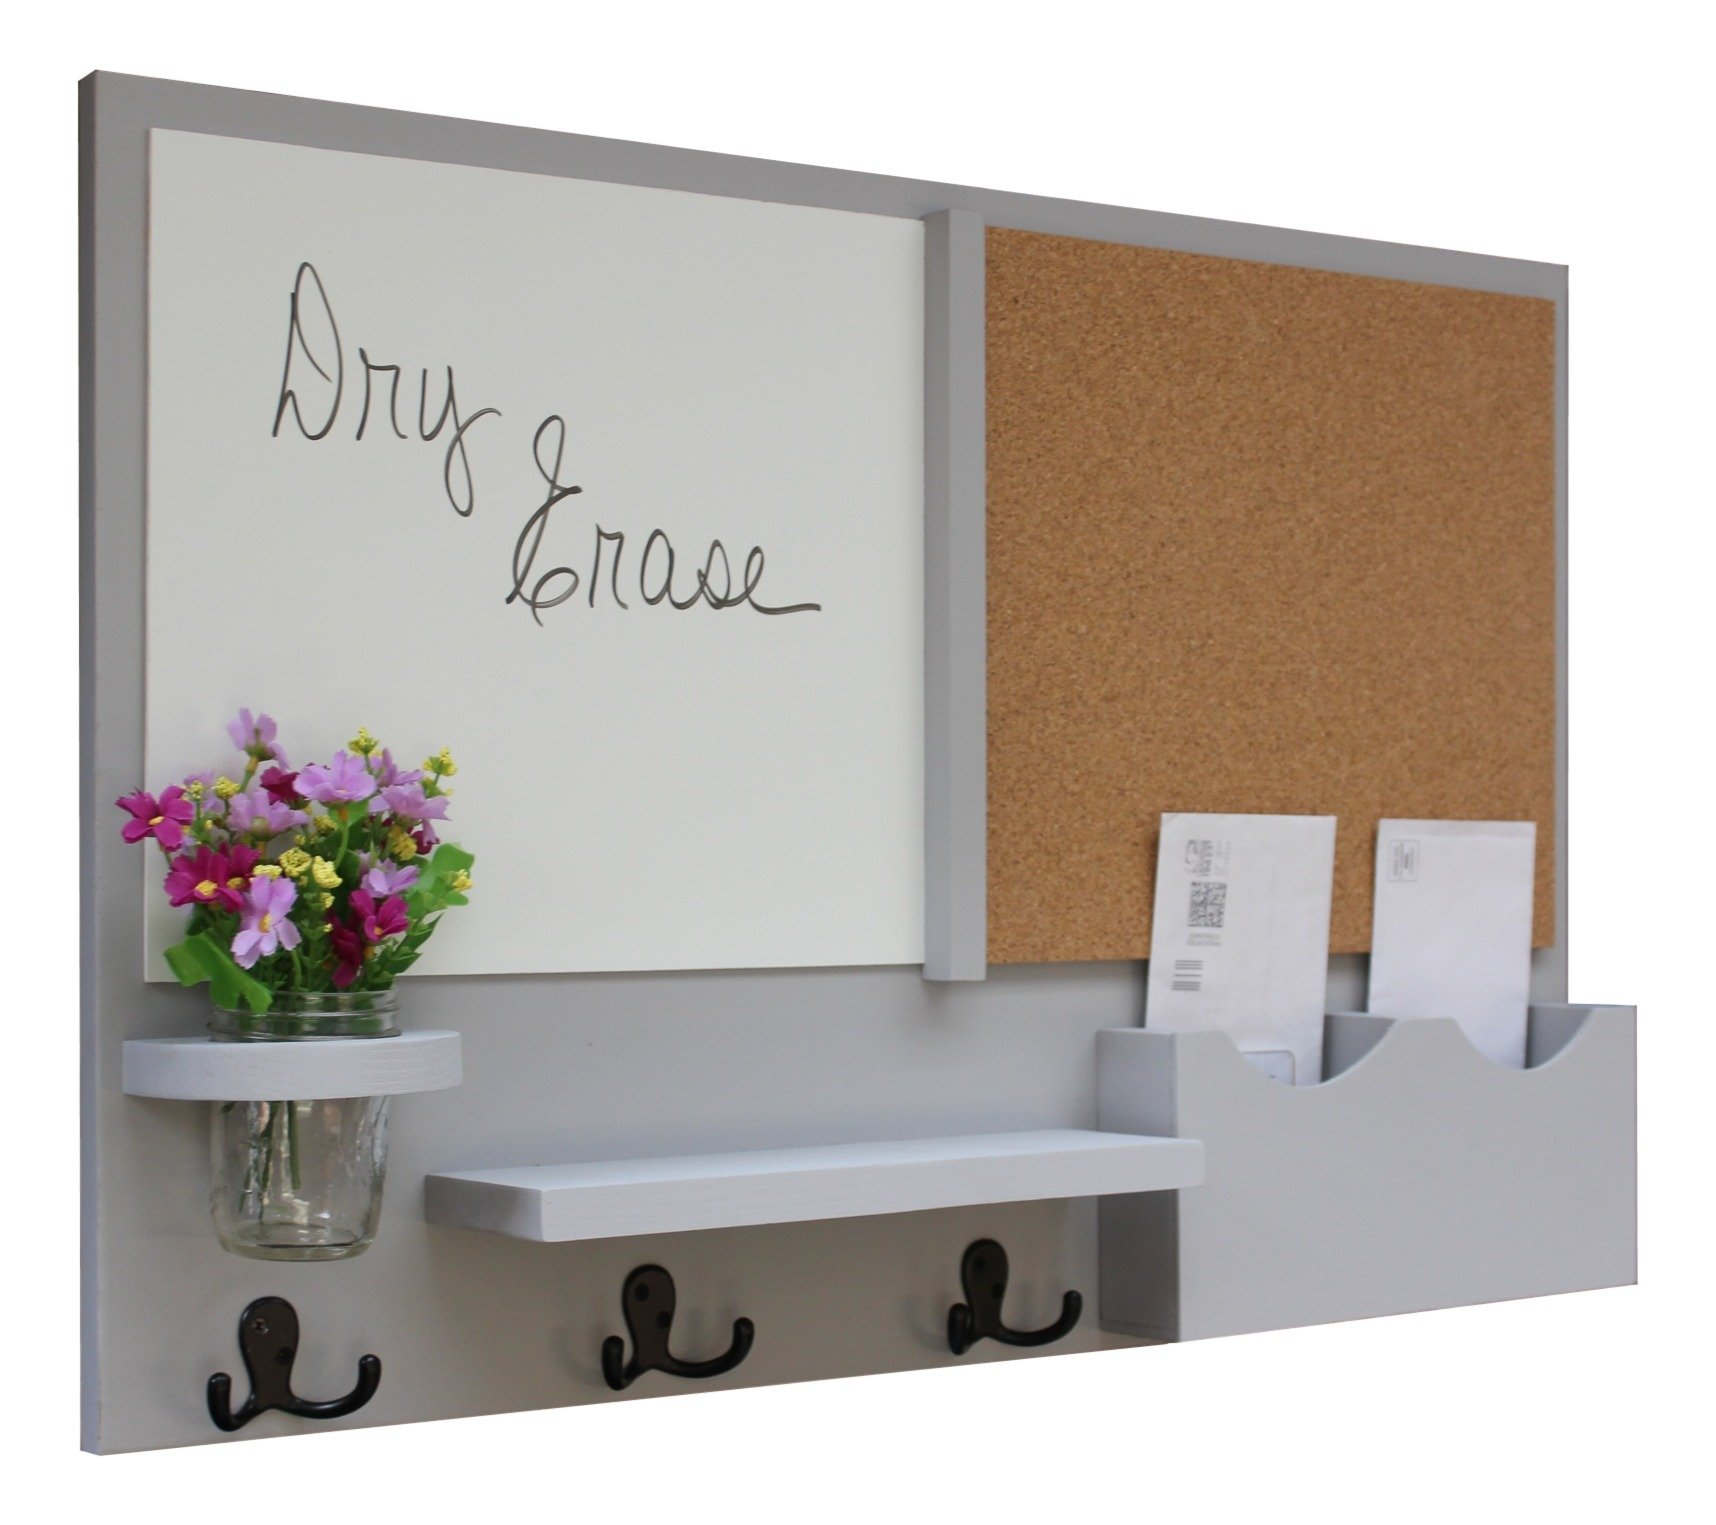 Legacy Studio Décor Message Center with White Board & Cork Board Letter Holder Coat Rack Key Hooks (Smooth, Gray)